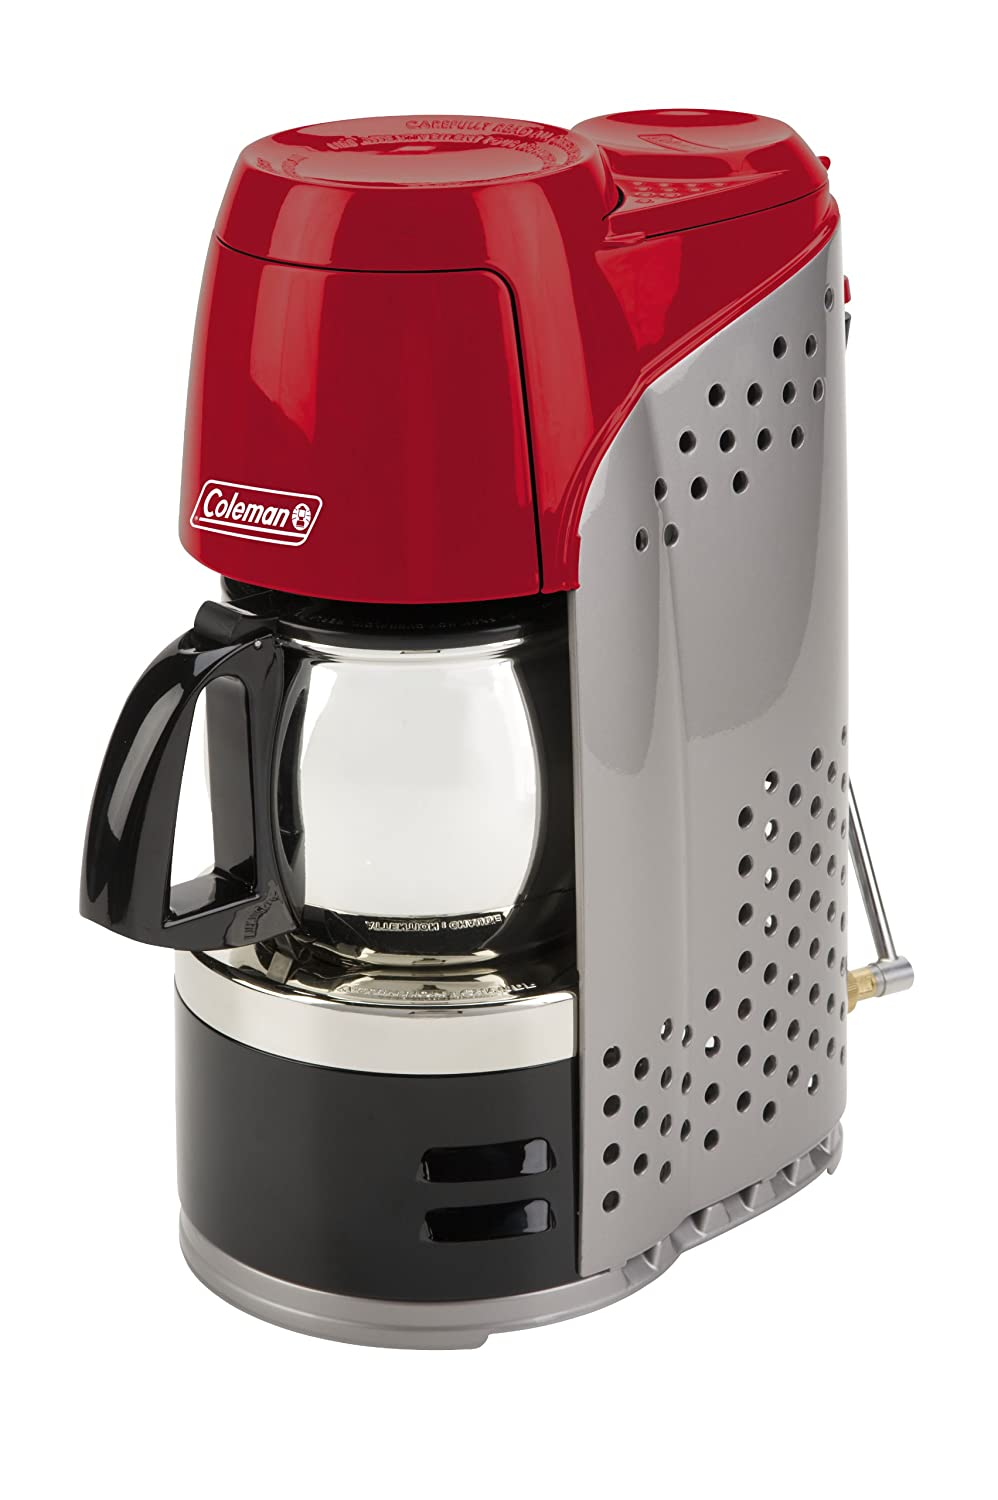 Coleman Portable Propane Coffeemaker with Stainless Steel Carafe at Amazon.com